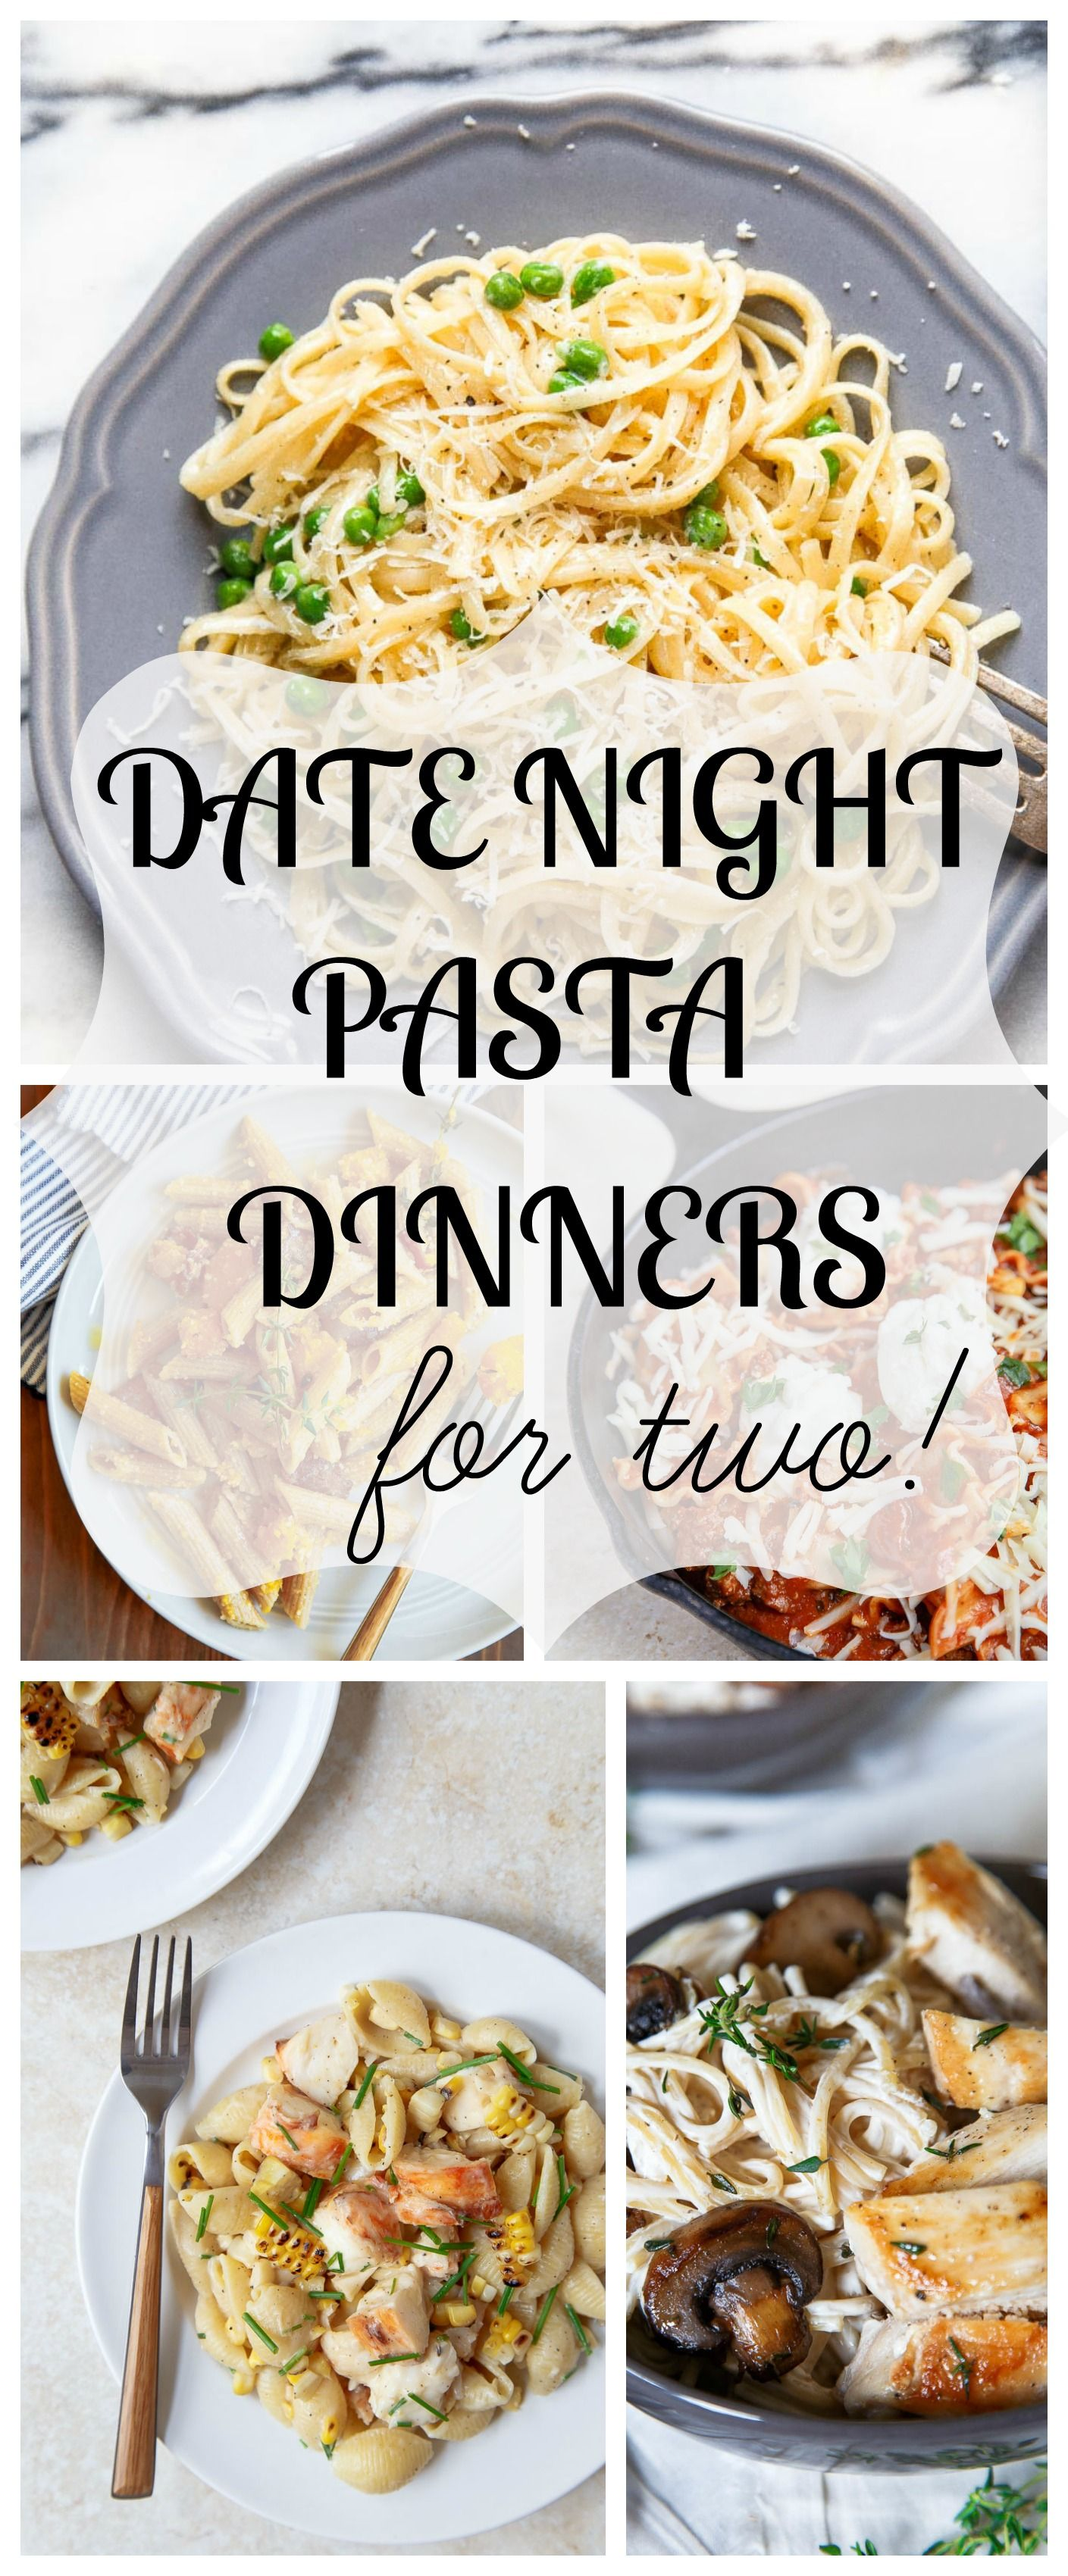 Romantic Foods For The Bedroom: Dinner For Two: Date Night Dinners Featuring Pasta For Two